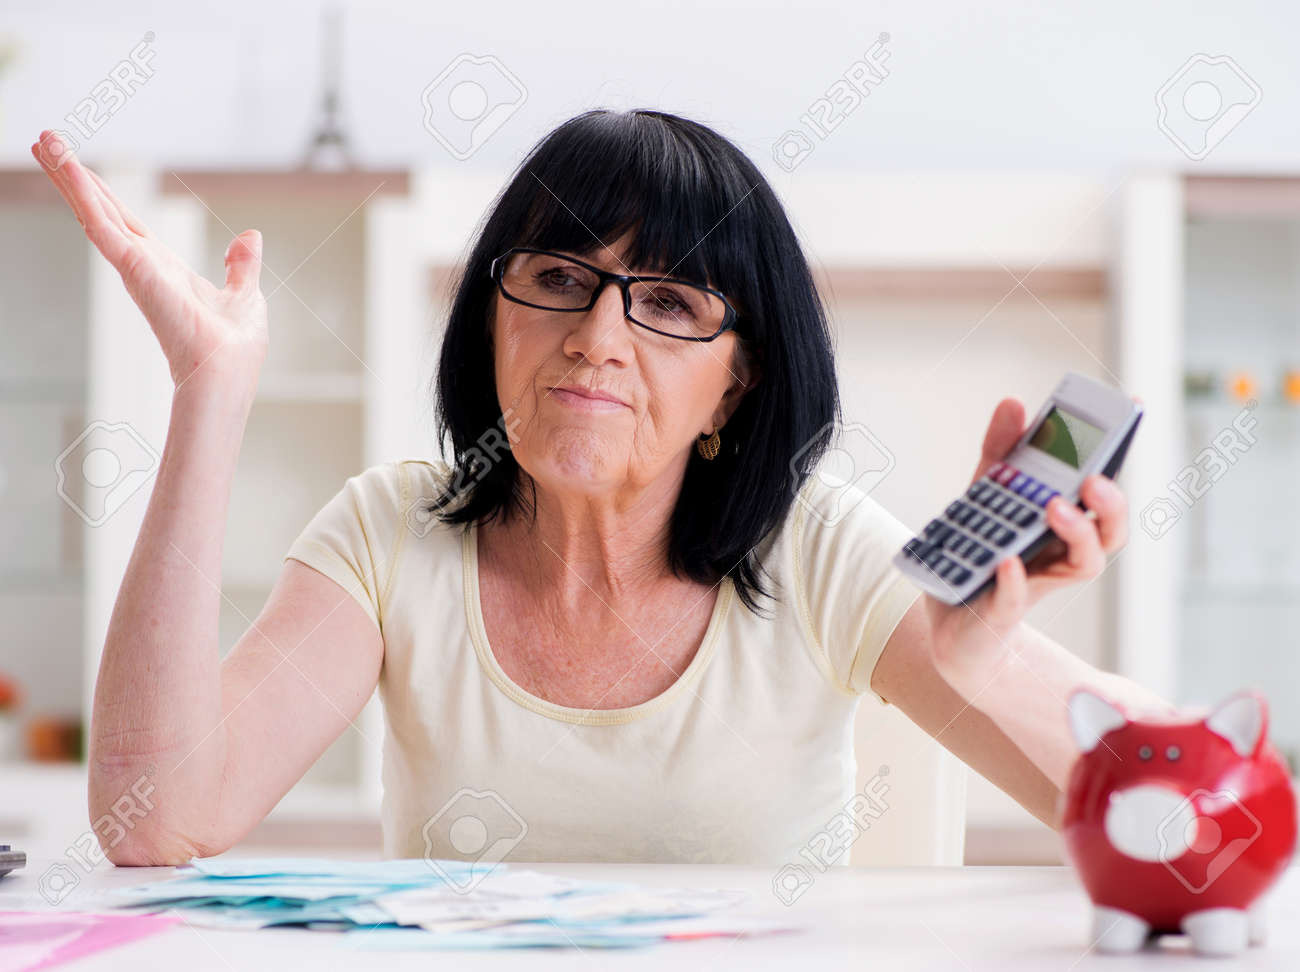 Mature woman trying to reconcile her bills - 131688259